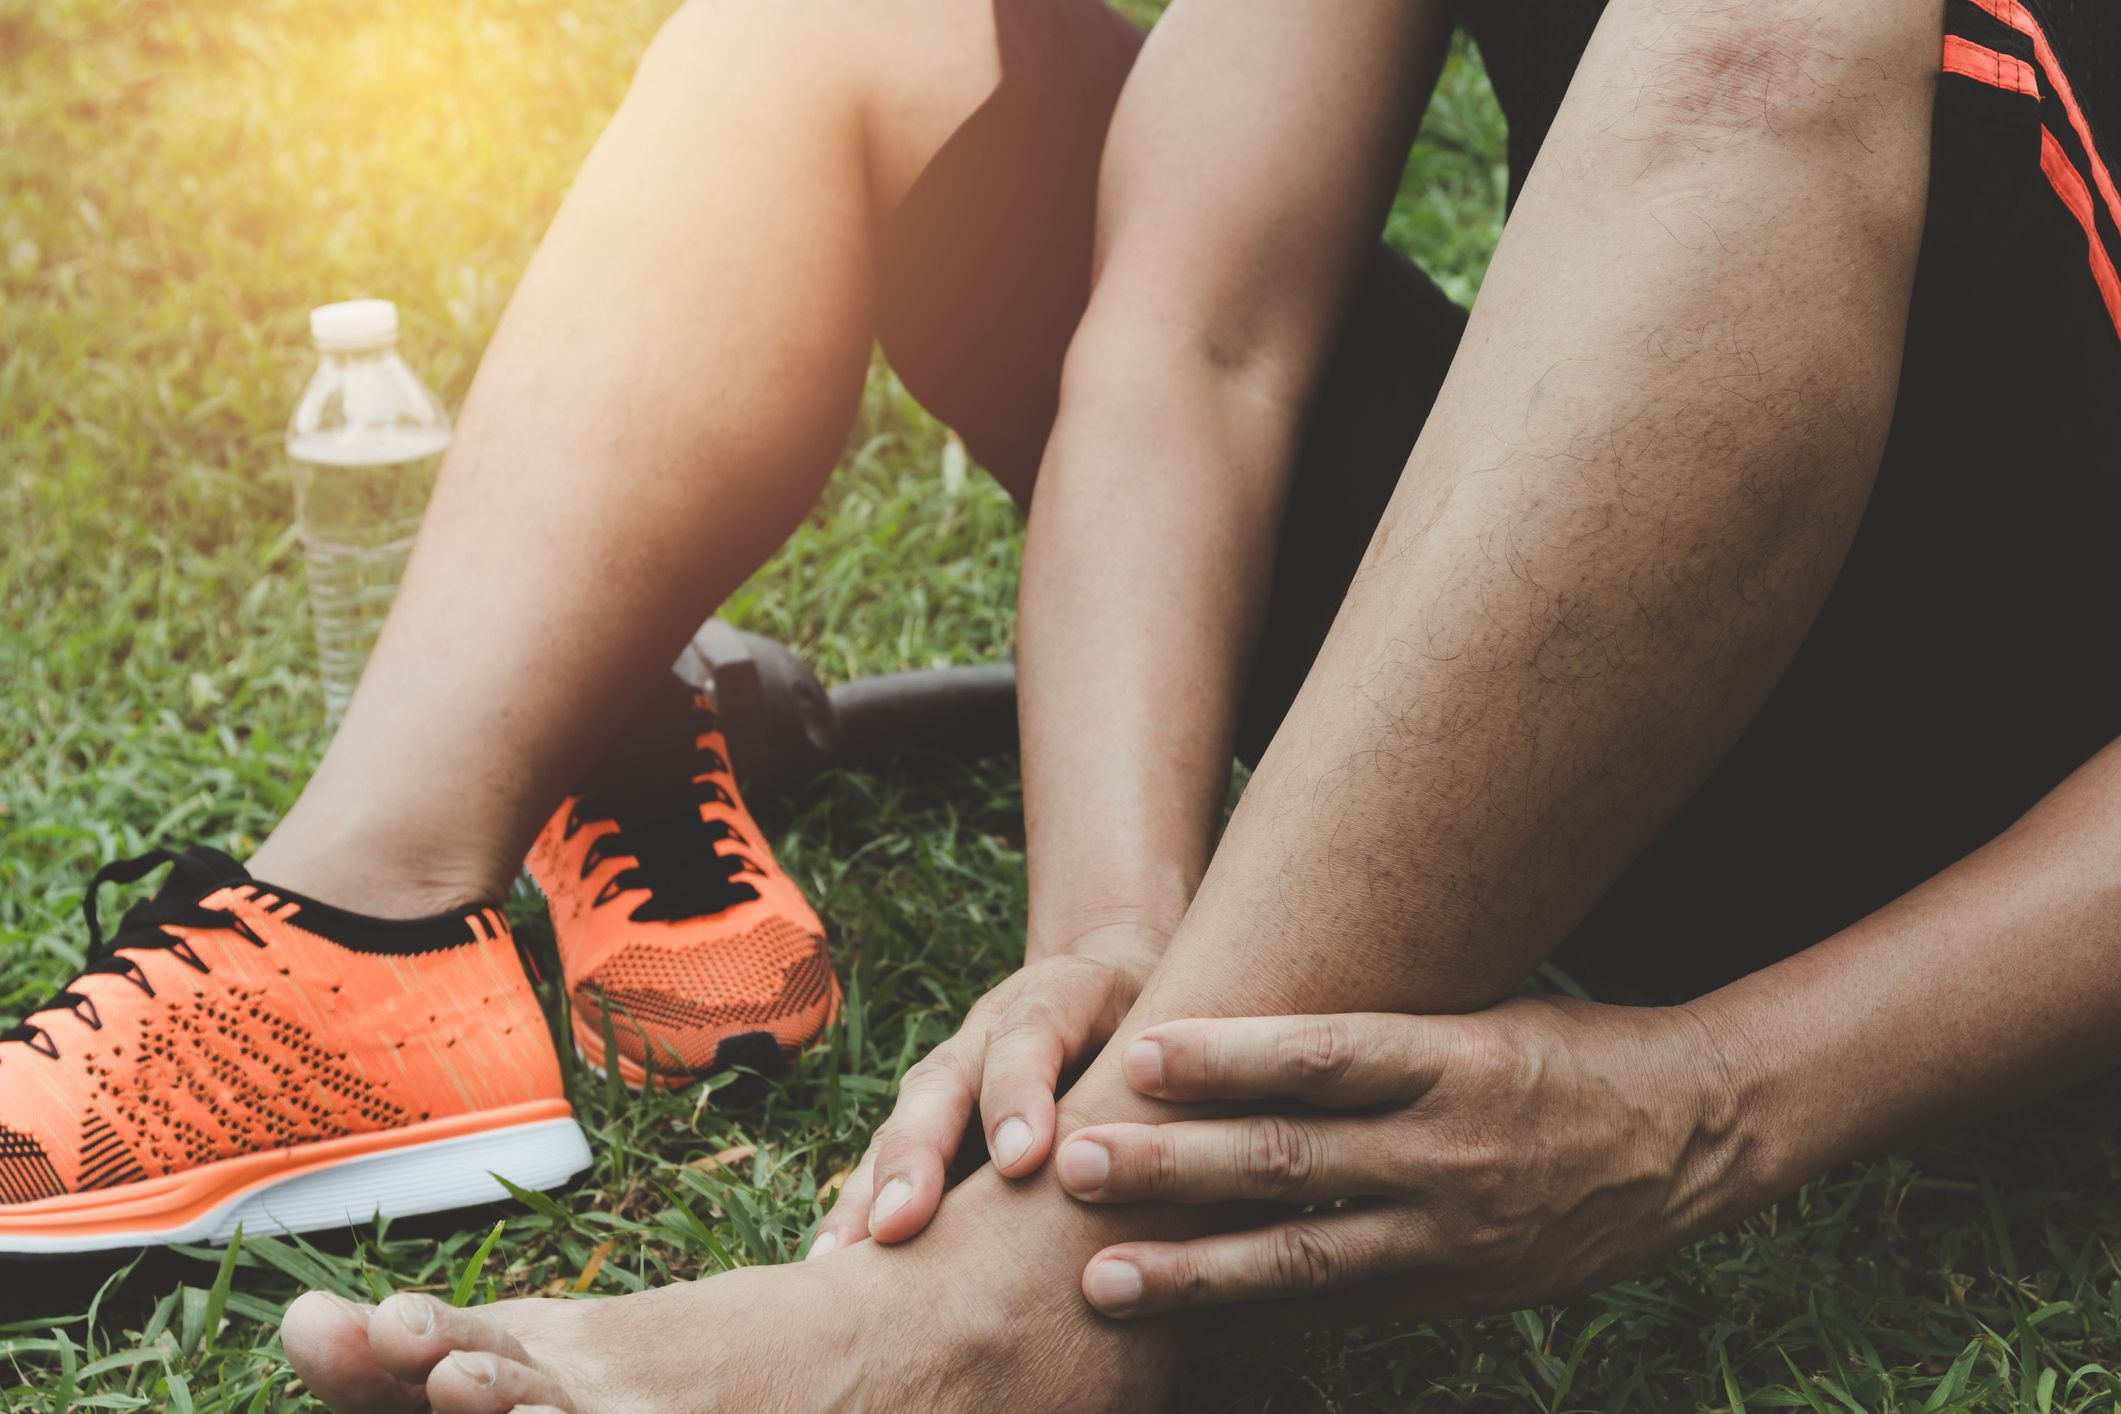 How to Deal With Ankle Pain While Running